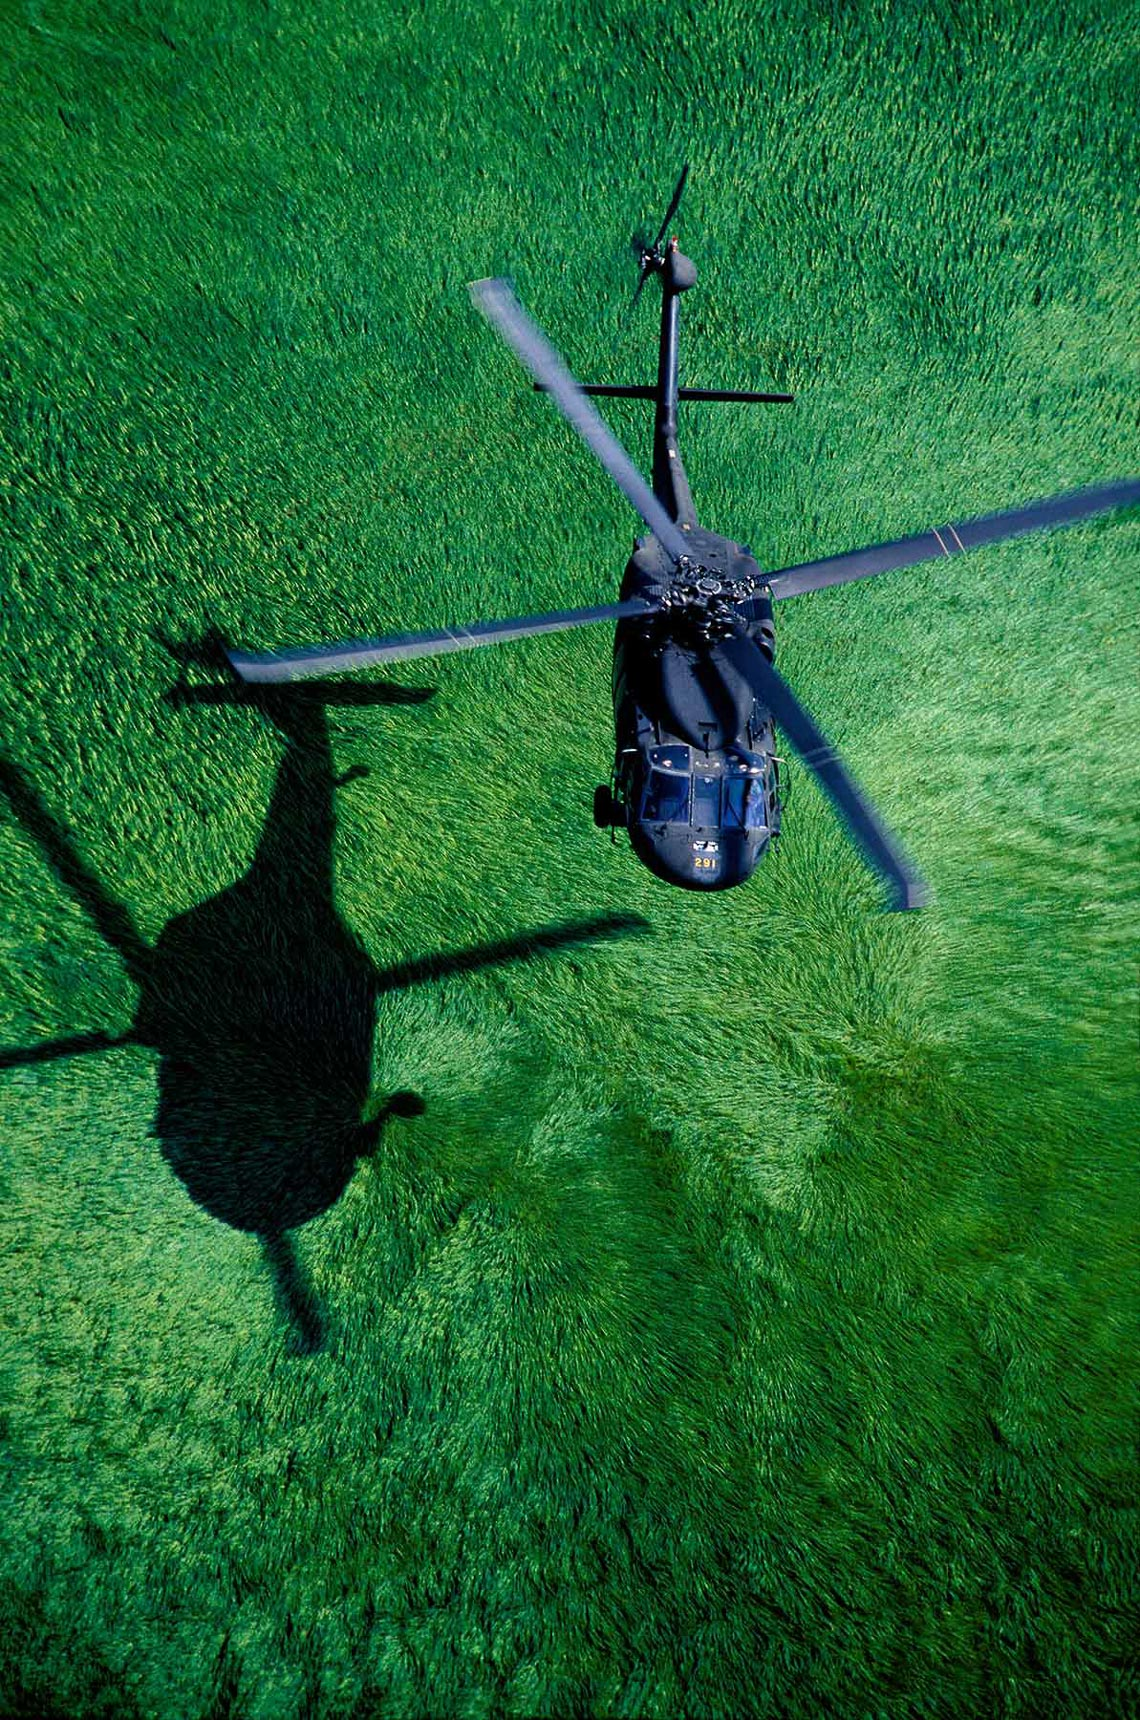 019-Helicopter-from-air--grass